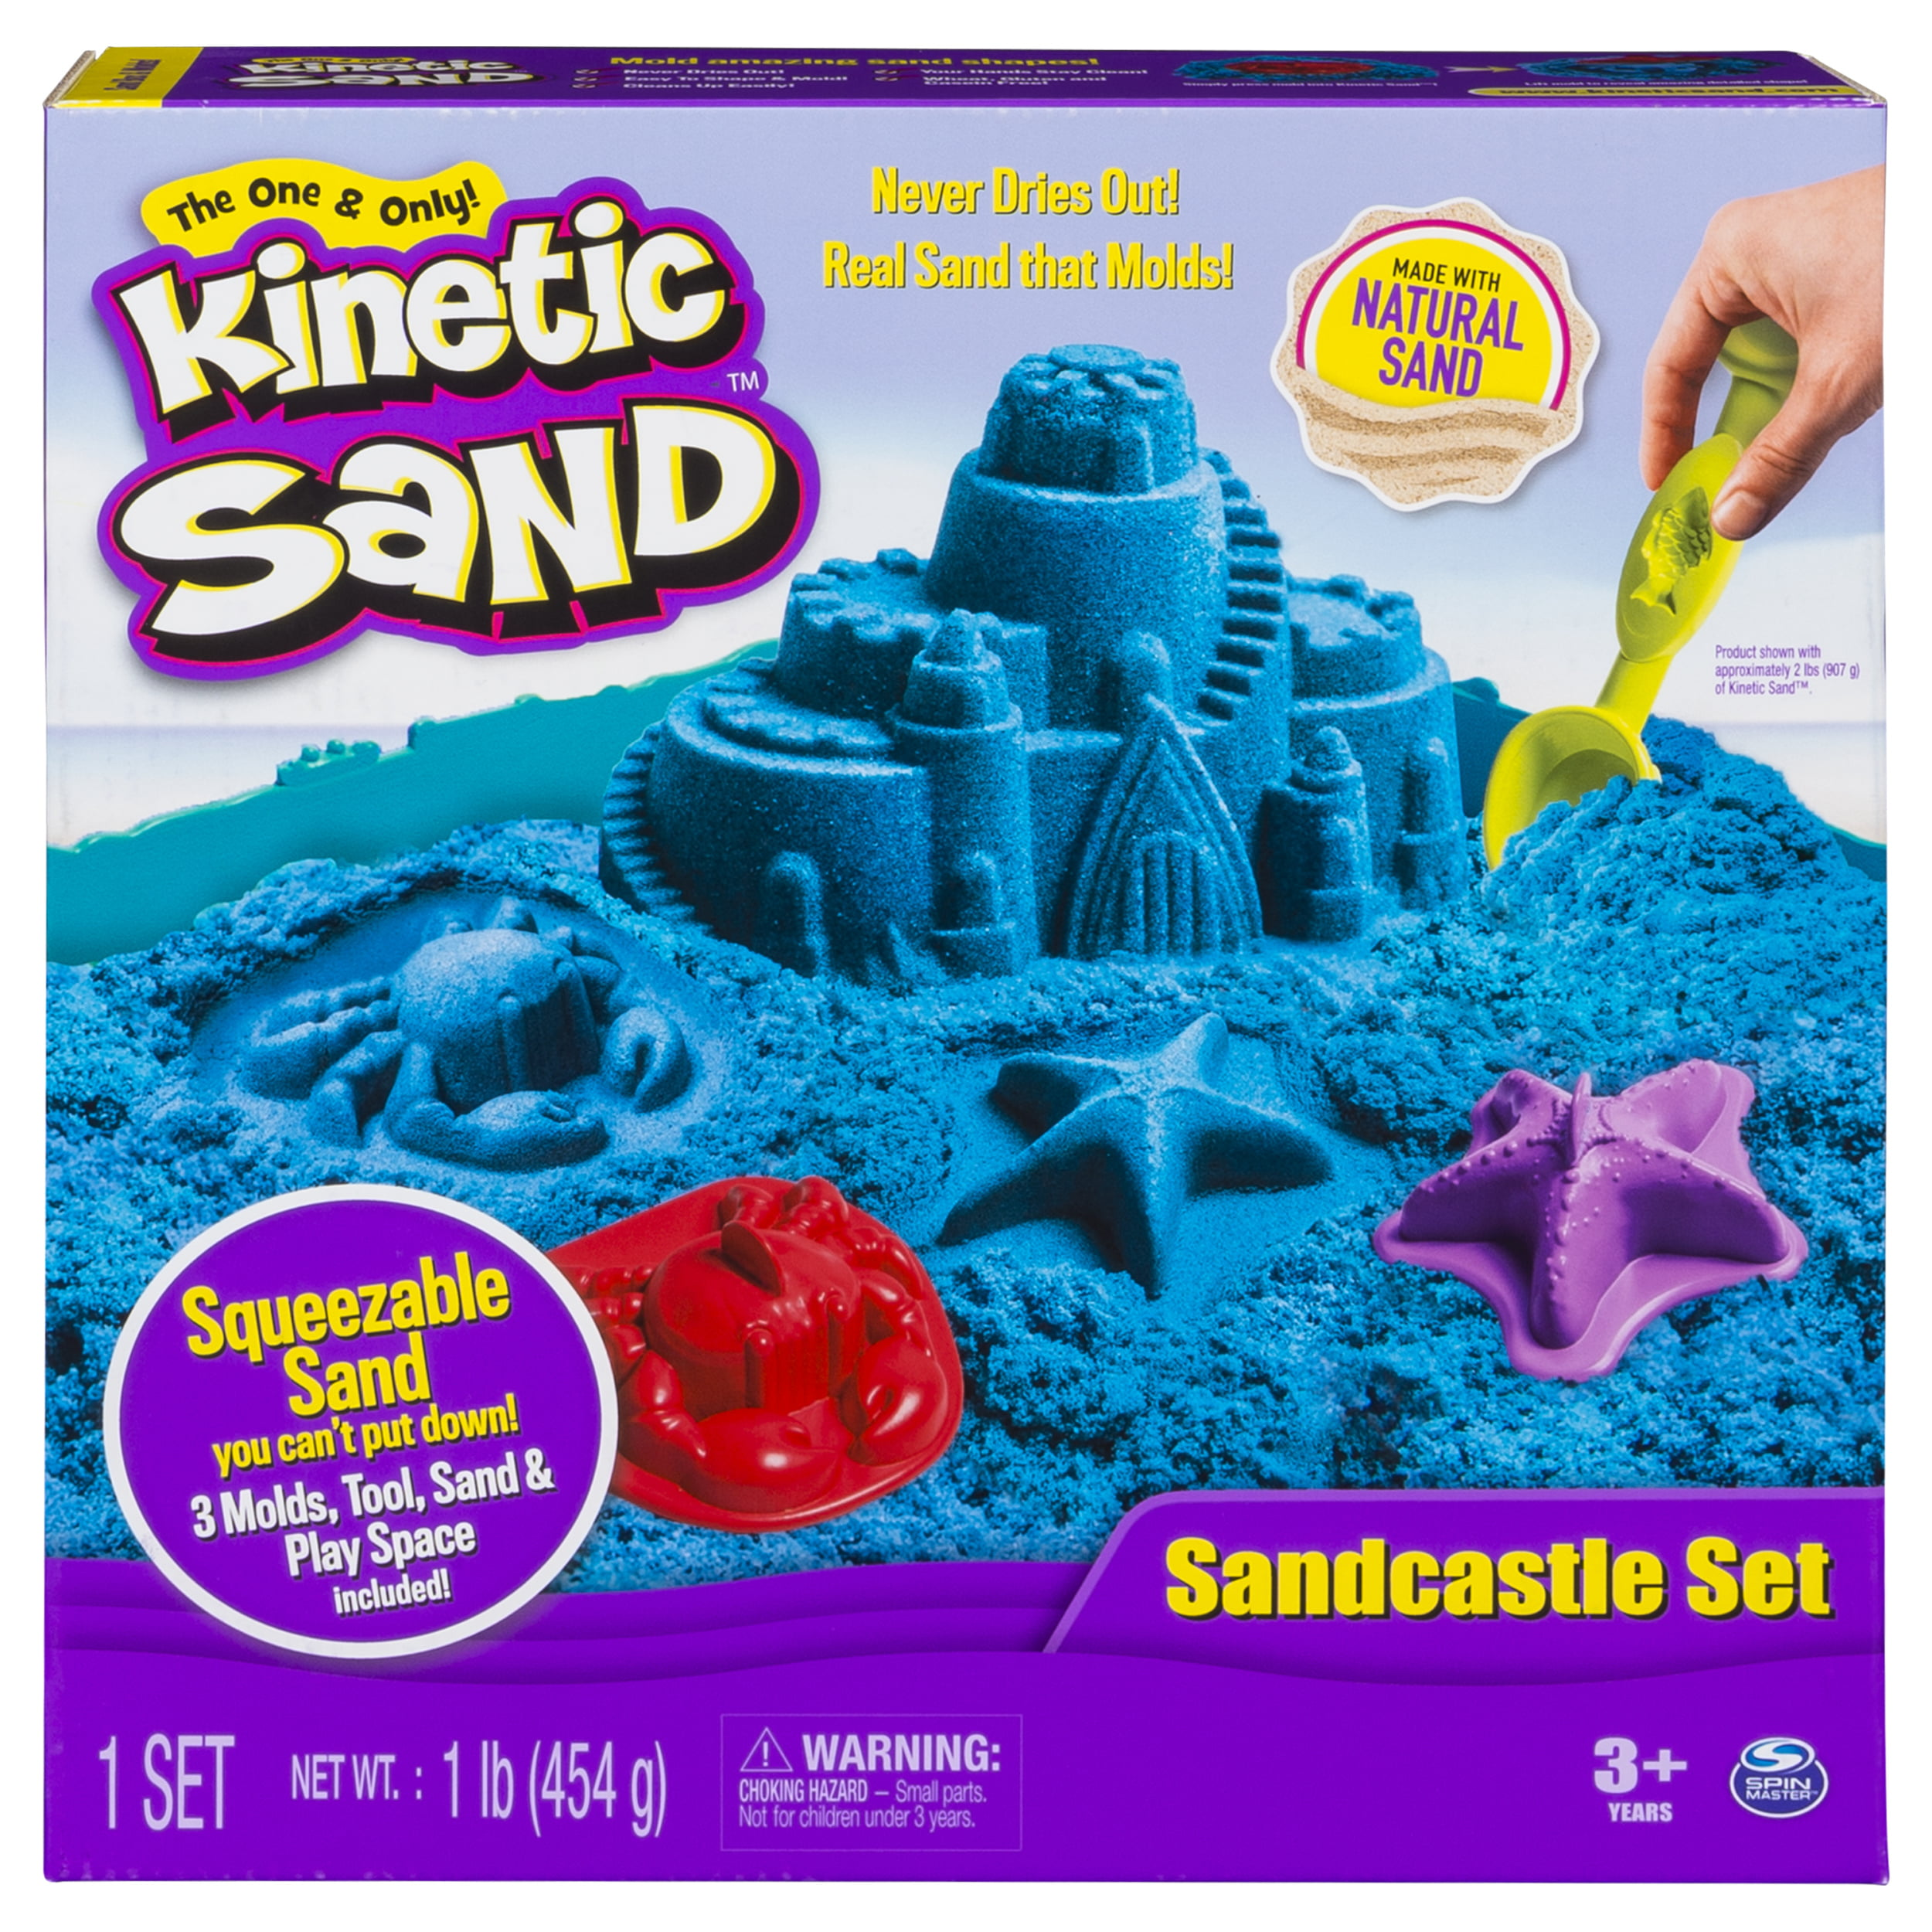 Cra-Z-Sand Mold n Play Deluxe Playset 9 Molds 4 Tools 1 Bonus Pack Sand 8 oz